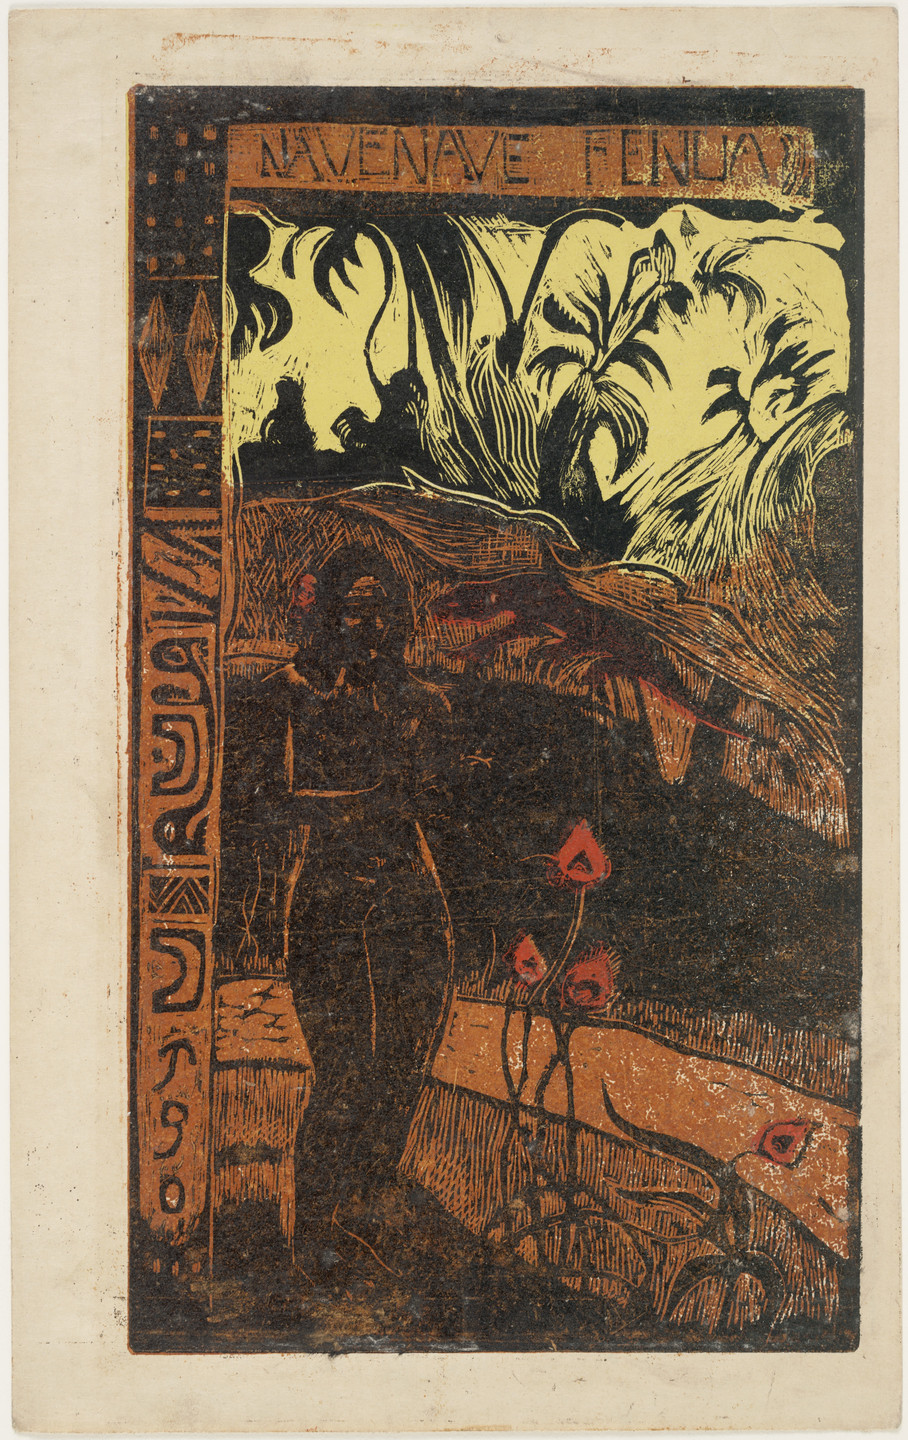 Paul Gauguin. Nave nave fenua (Delightful Land) from Noa Noa (Fragrant Scent). 1893–94